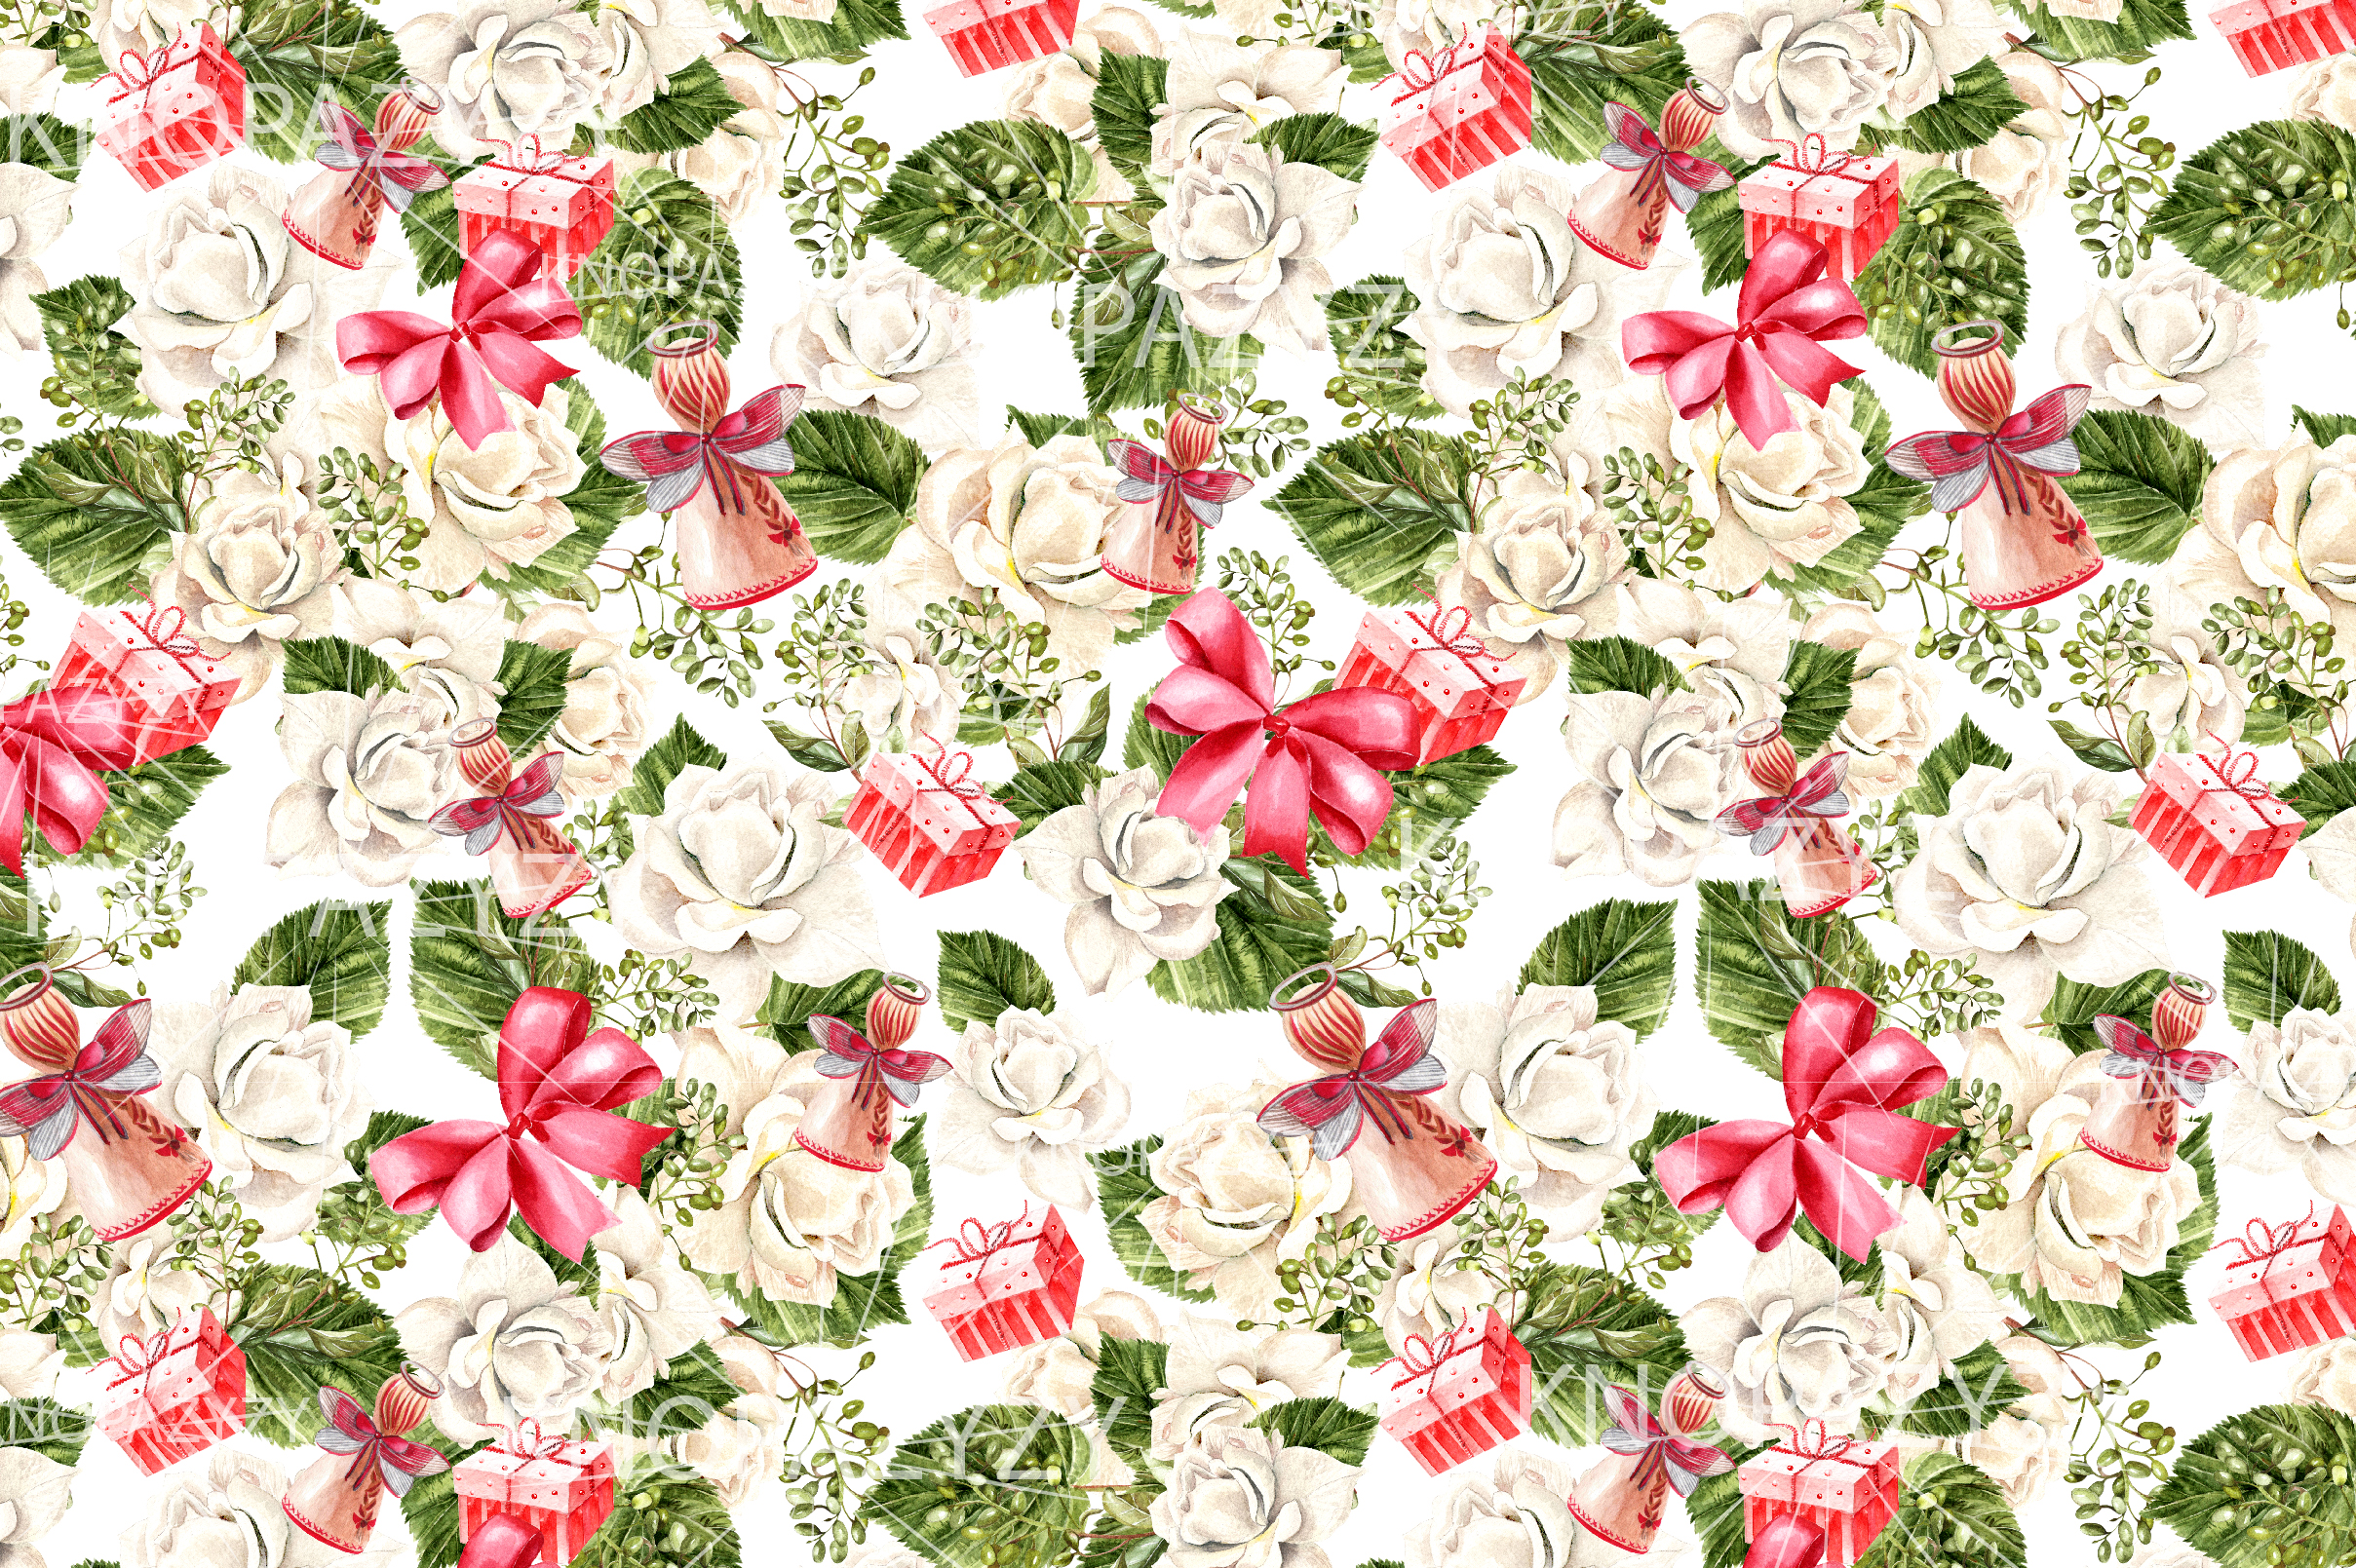 Hand Drawn Watercolor Christmas 13 Patterns example image 5